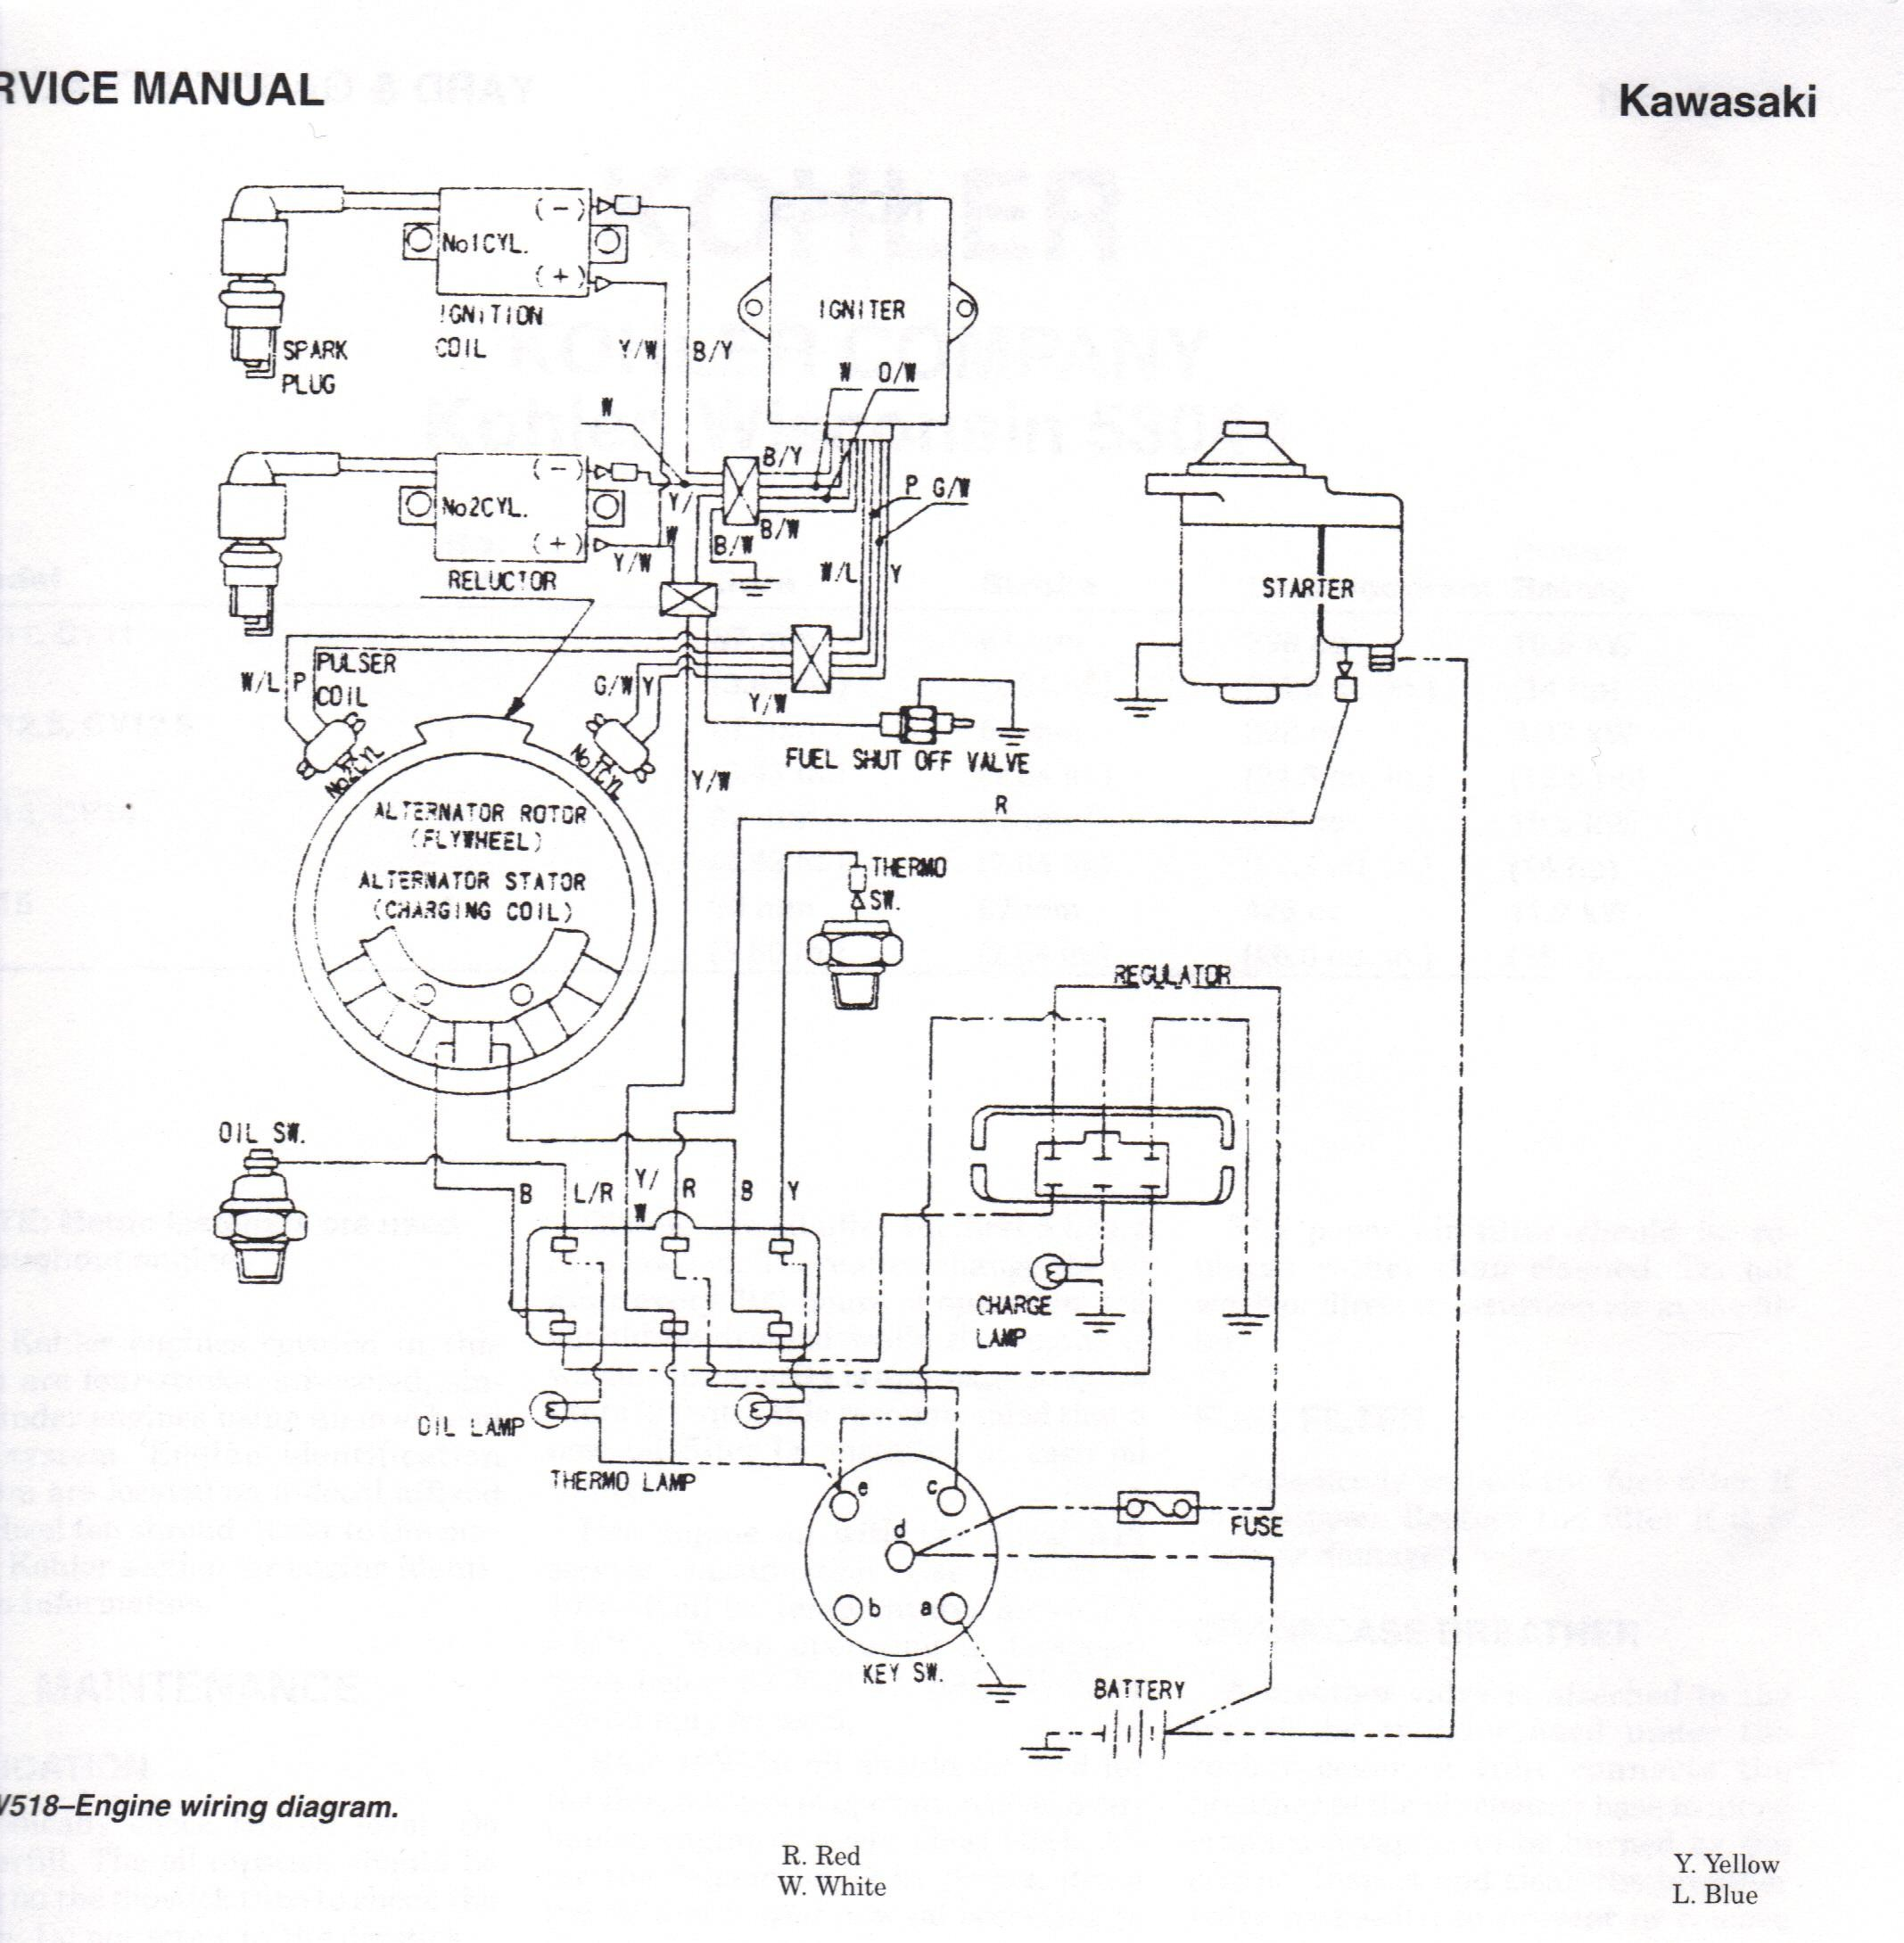 John Deere 345 Schematic Lo 1389] Wiring Diagram for 2640 John Deere Alternator Of John Deere 345 Schematic Cb 4290] for John Deere 1050 Tractor Wiring Diagram